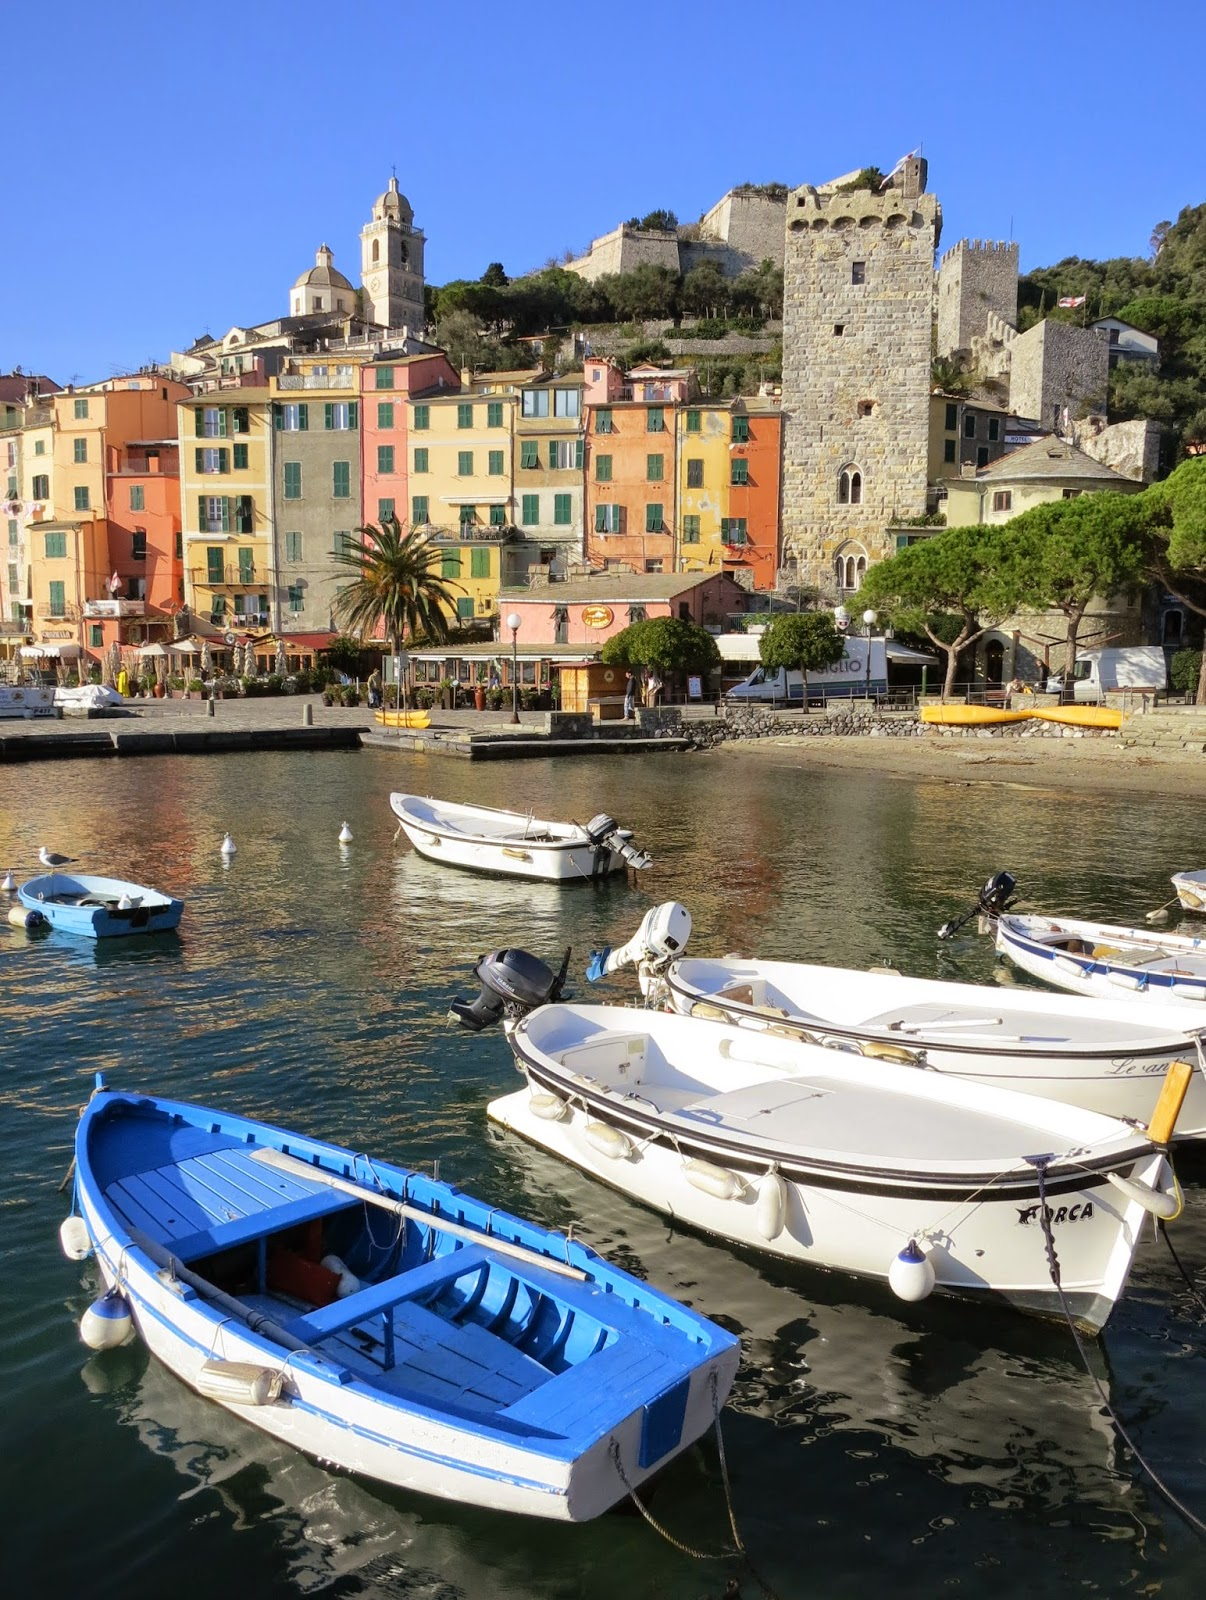 Portovenere on the Gulf of La Spezia, Liguria.